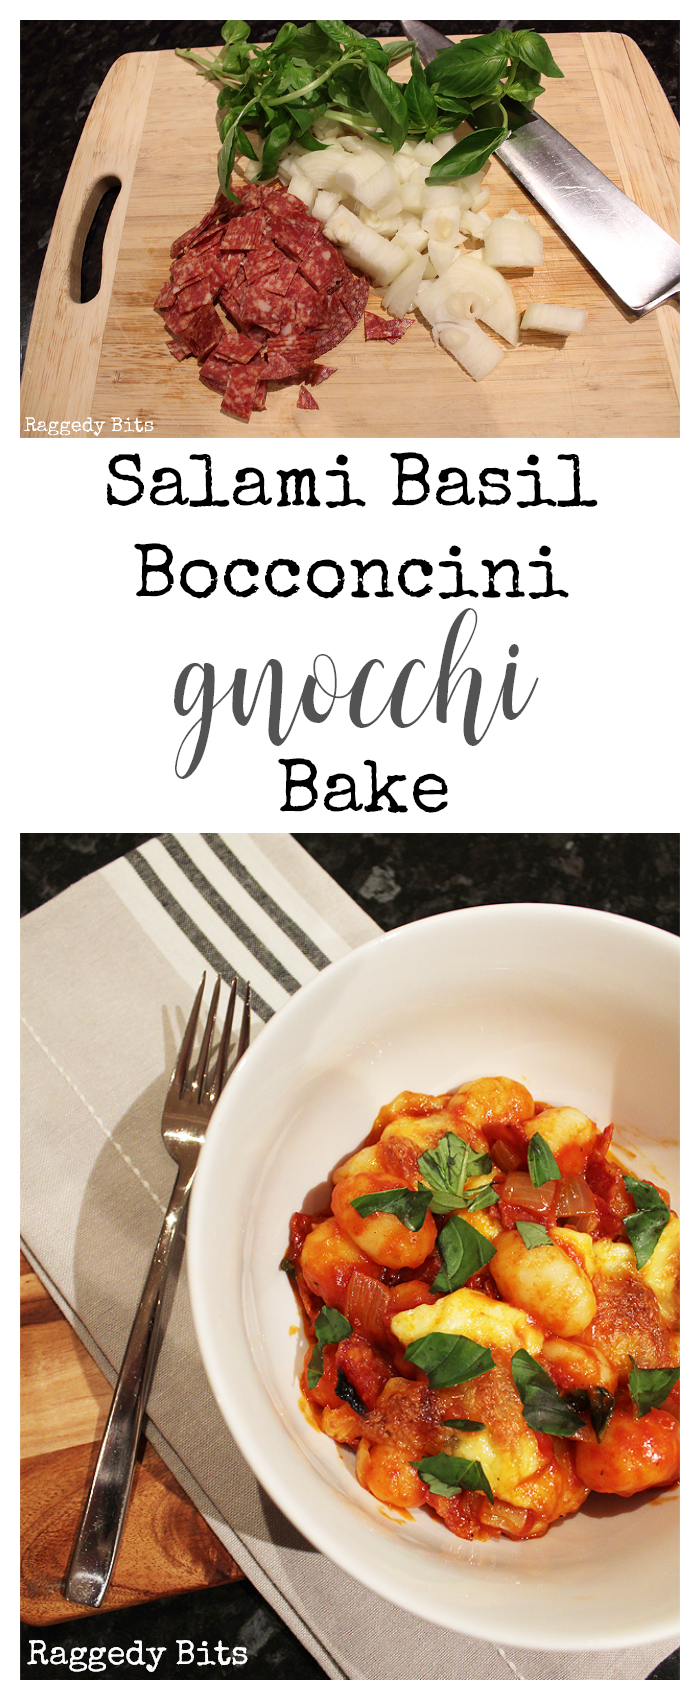 This Salami Basil Bocconcini Gnocchi Bake is a perfect easy mid week recipe that the whole family will enjoy. Serve with a green salad or garlic bread | Printable Recipe | www.raggedy-bits.com #easy #recipe #gnocchi #Basil #Salami #Bocconcini